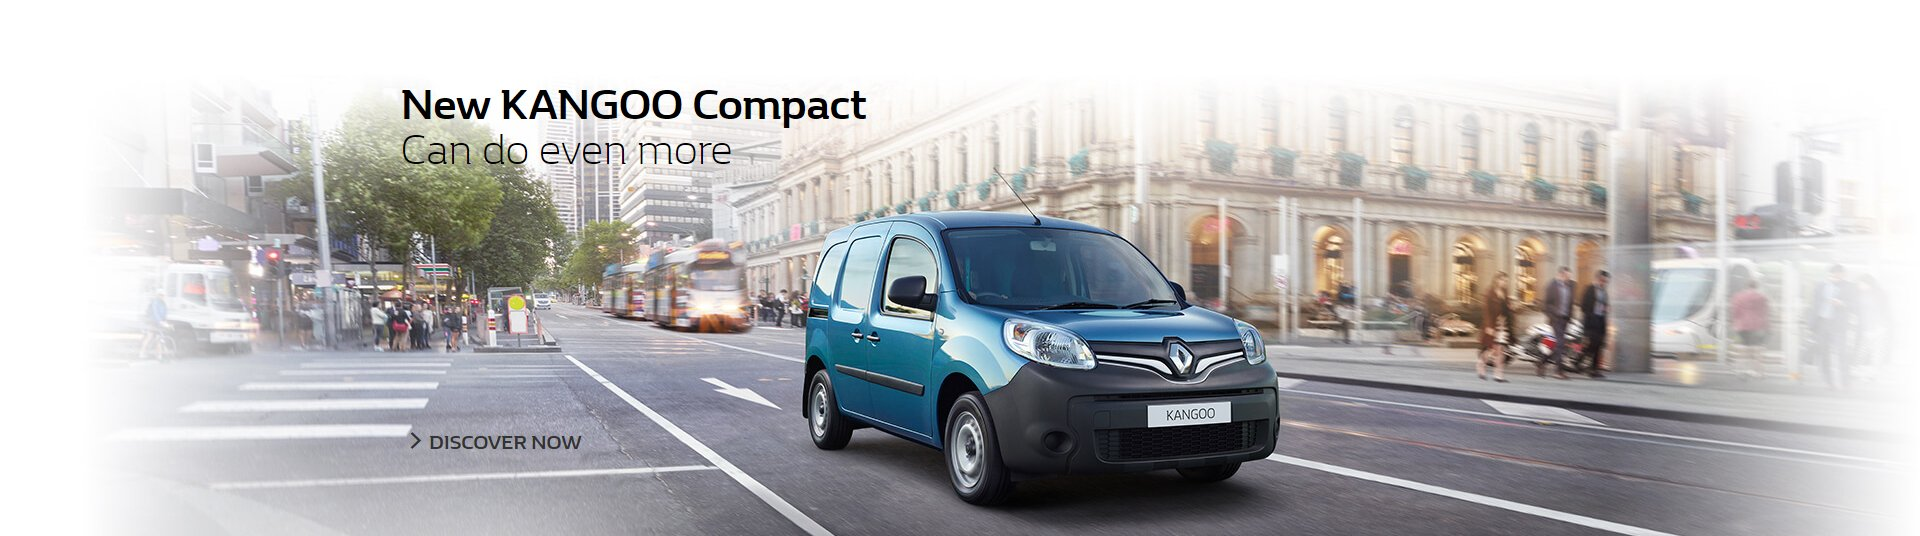 New Renault Kangoo Compact can do even more, available at Metro Renault Brisbane.